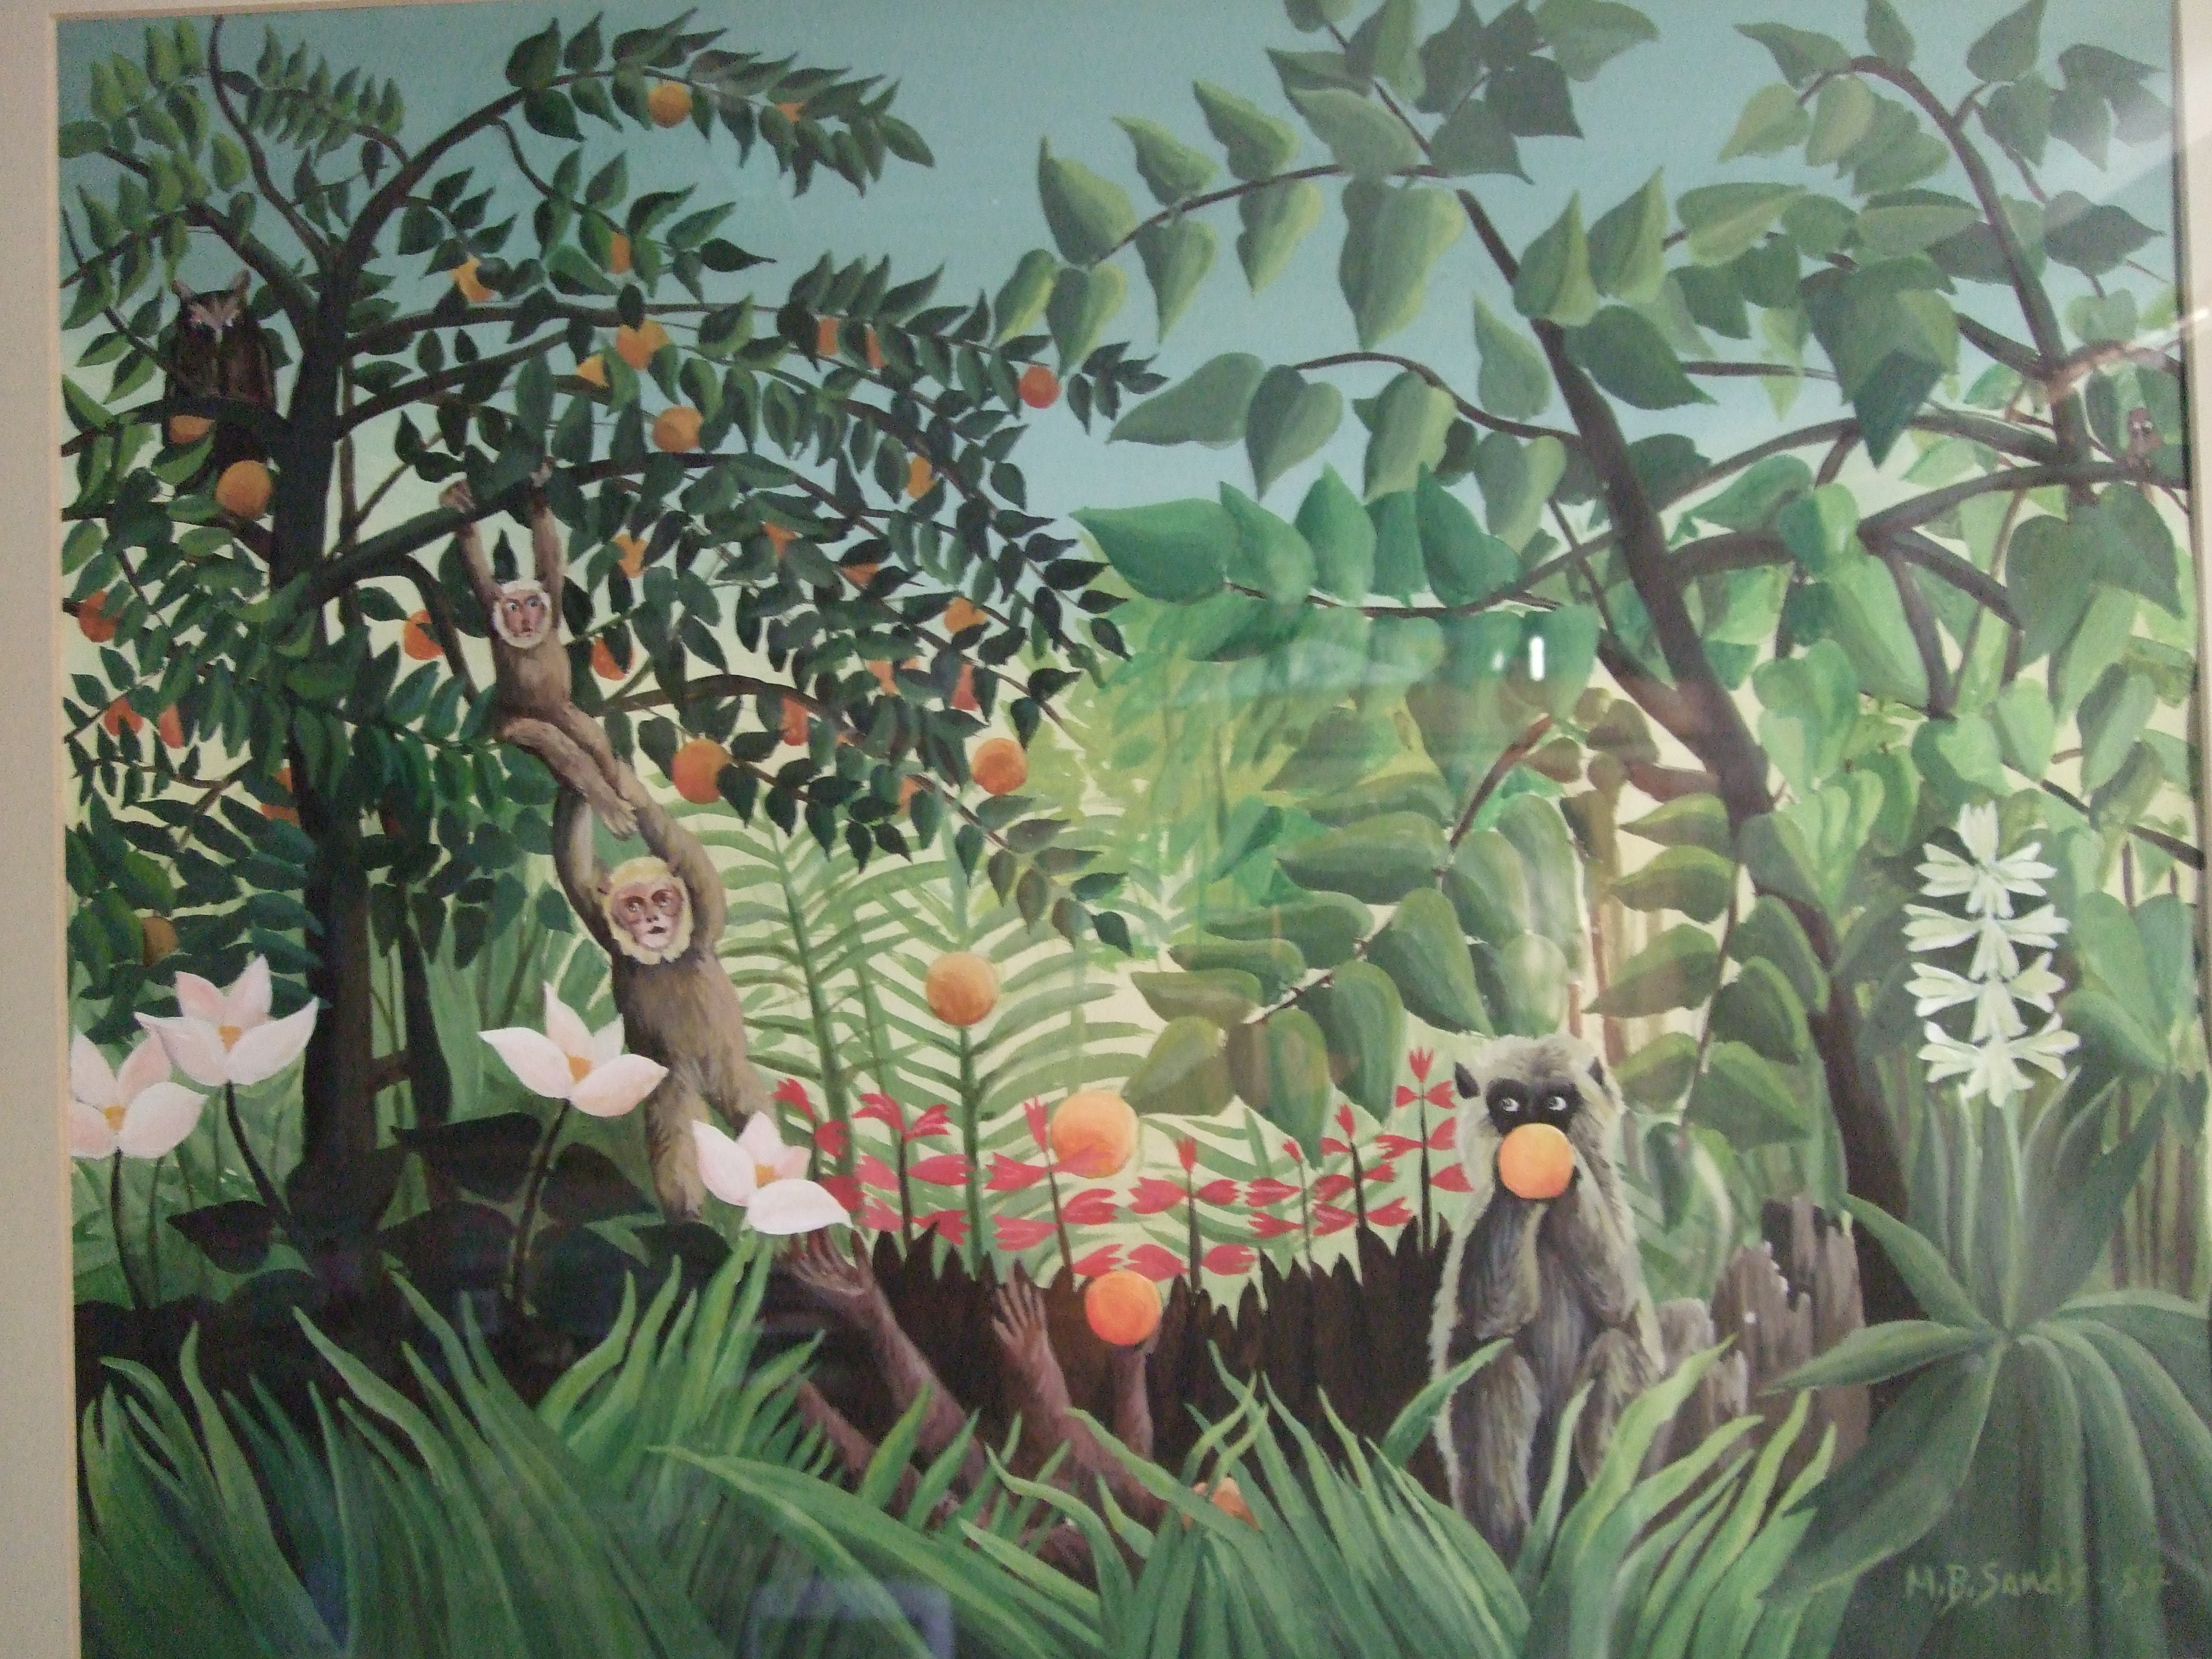 henri rousseau Henri rousseau was a french painter whose art became famous after his death here are 10 facts about the creator of the dream and father of naïve art.